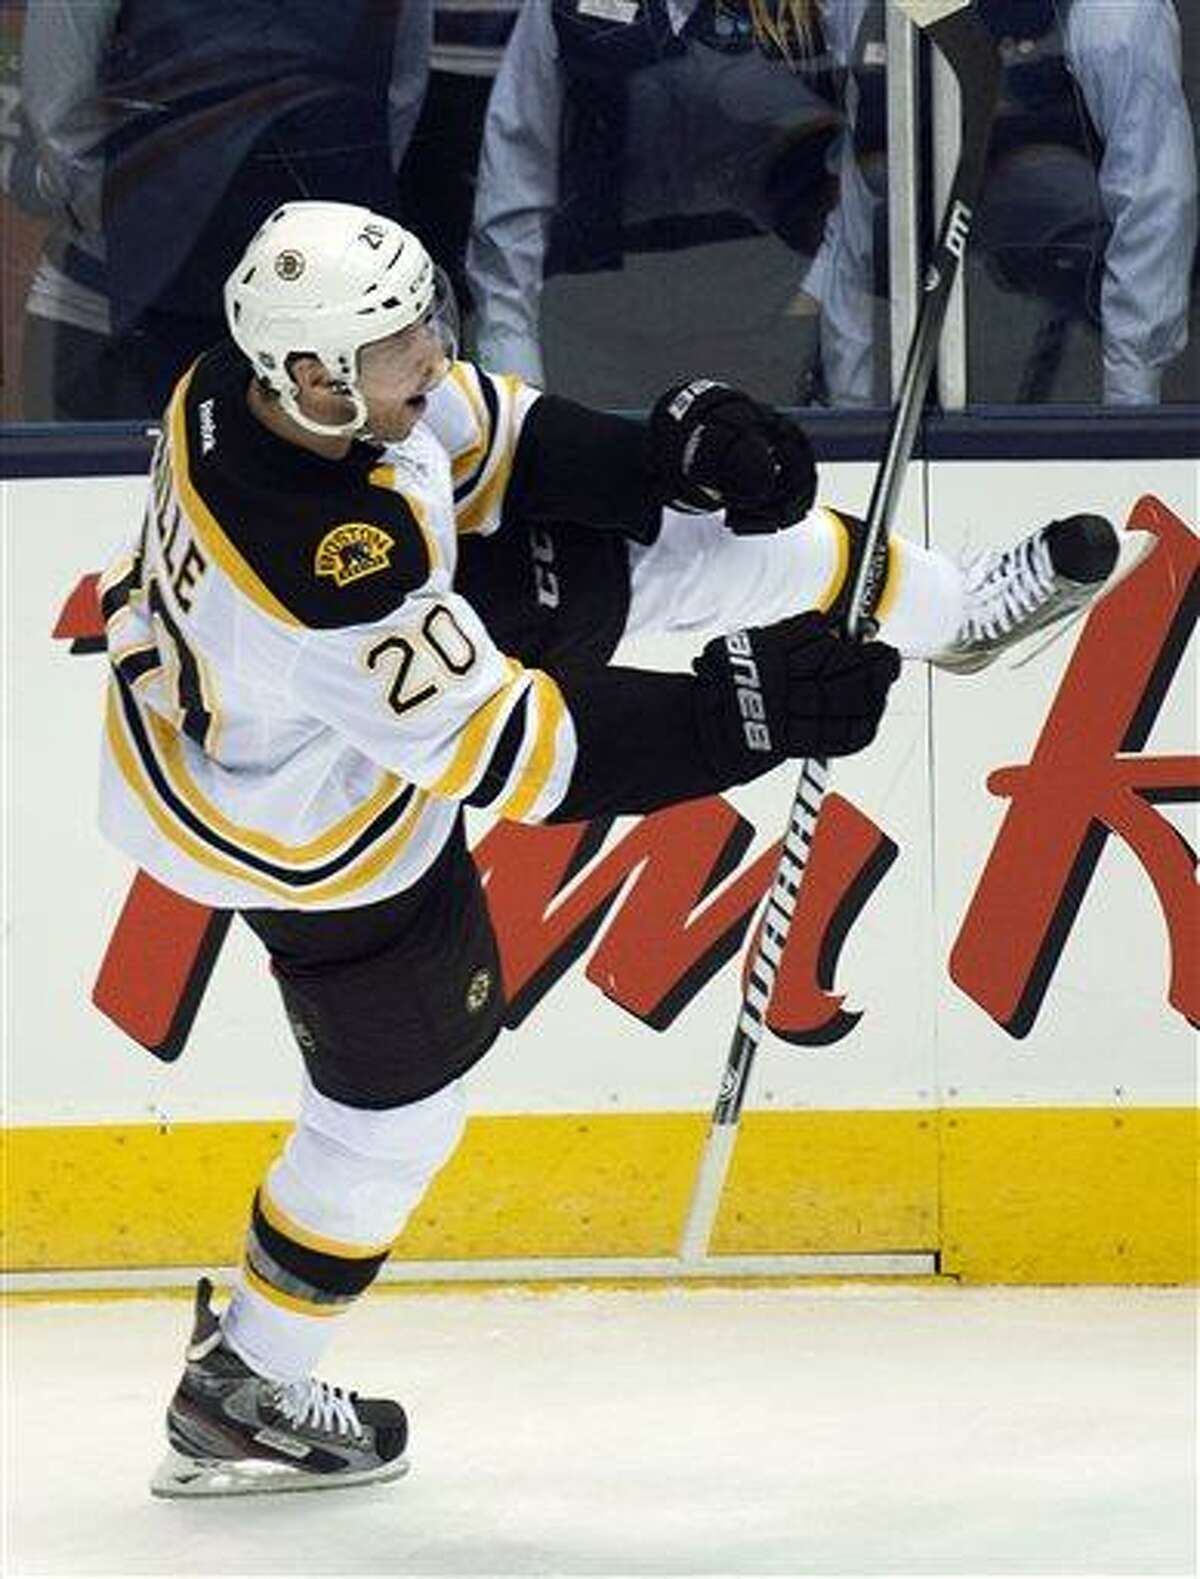 Boston Bruins forward Daniel Paille celebrates his goal against the Toronto Maple Leafs during the second period of Game 3 of their first-round NHL hockey Stanley Cup playoff series, Monday, May 6, 2013, in Toronto. (AP Photo/The Canadian Press, Nathan Denette)